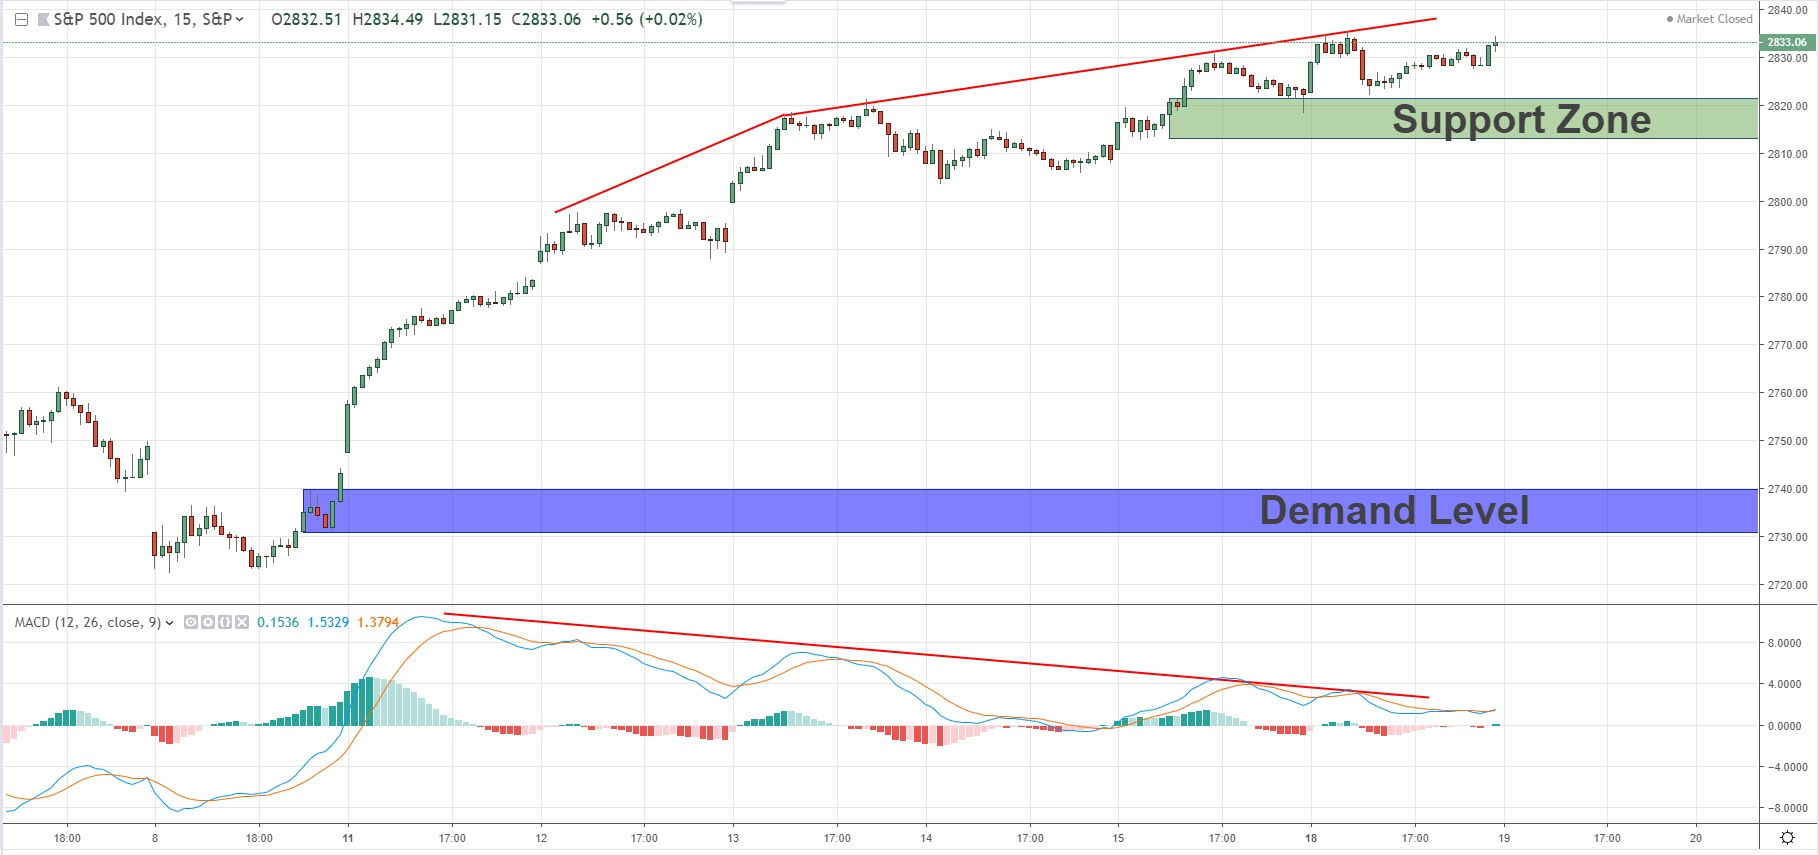 Key Levels With MACD Divergence For SPX500 19/03/19